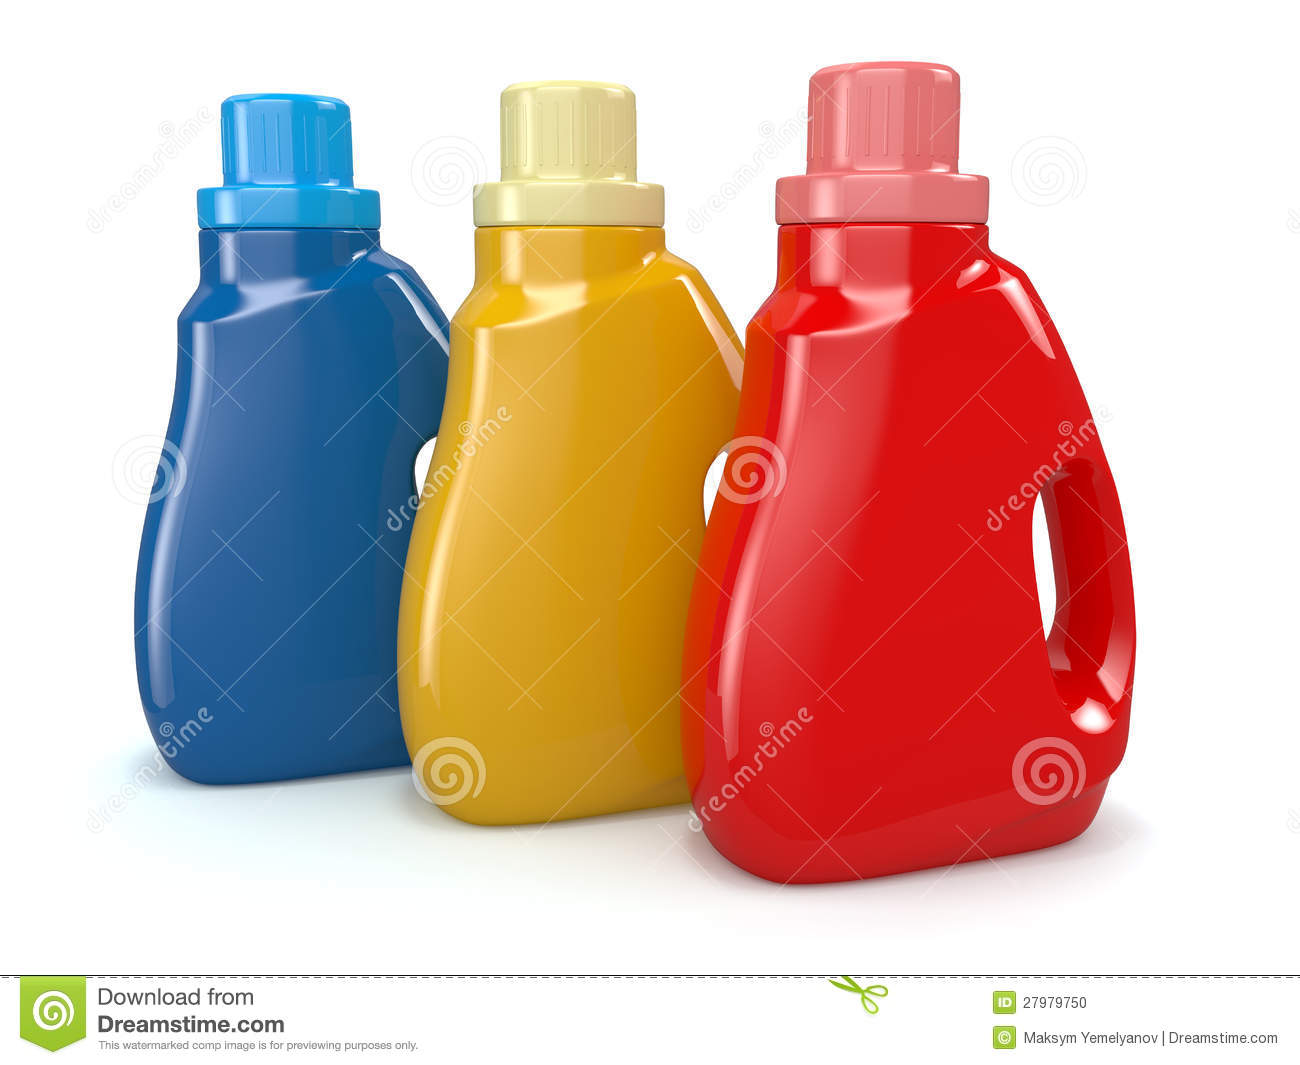 Safety Syringes And Needles further Stock Photo Plastic Detergent Bottles Cleaning Products Image27979750 also Gore as well Urethane Marker Bands as well Turtleskin Search Gloves. on needle disposal